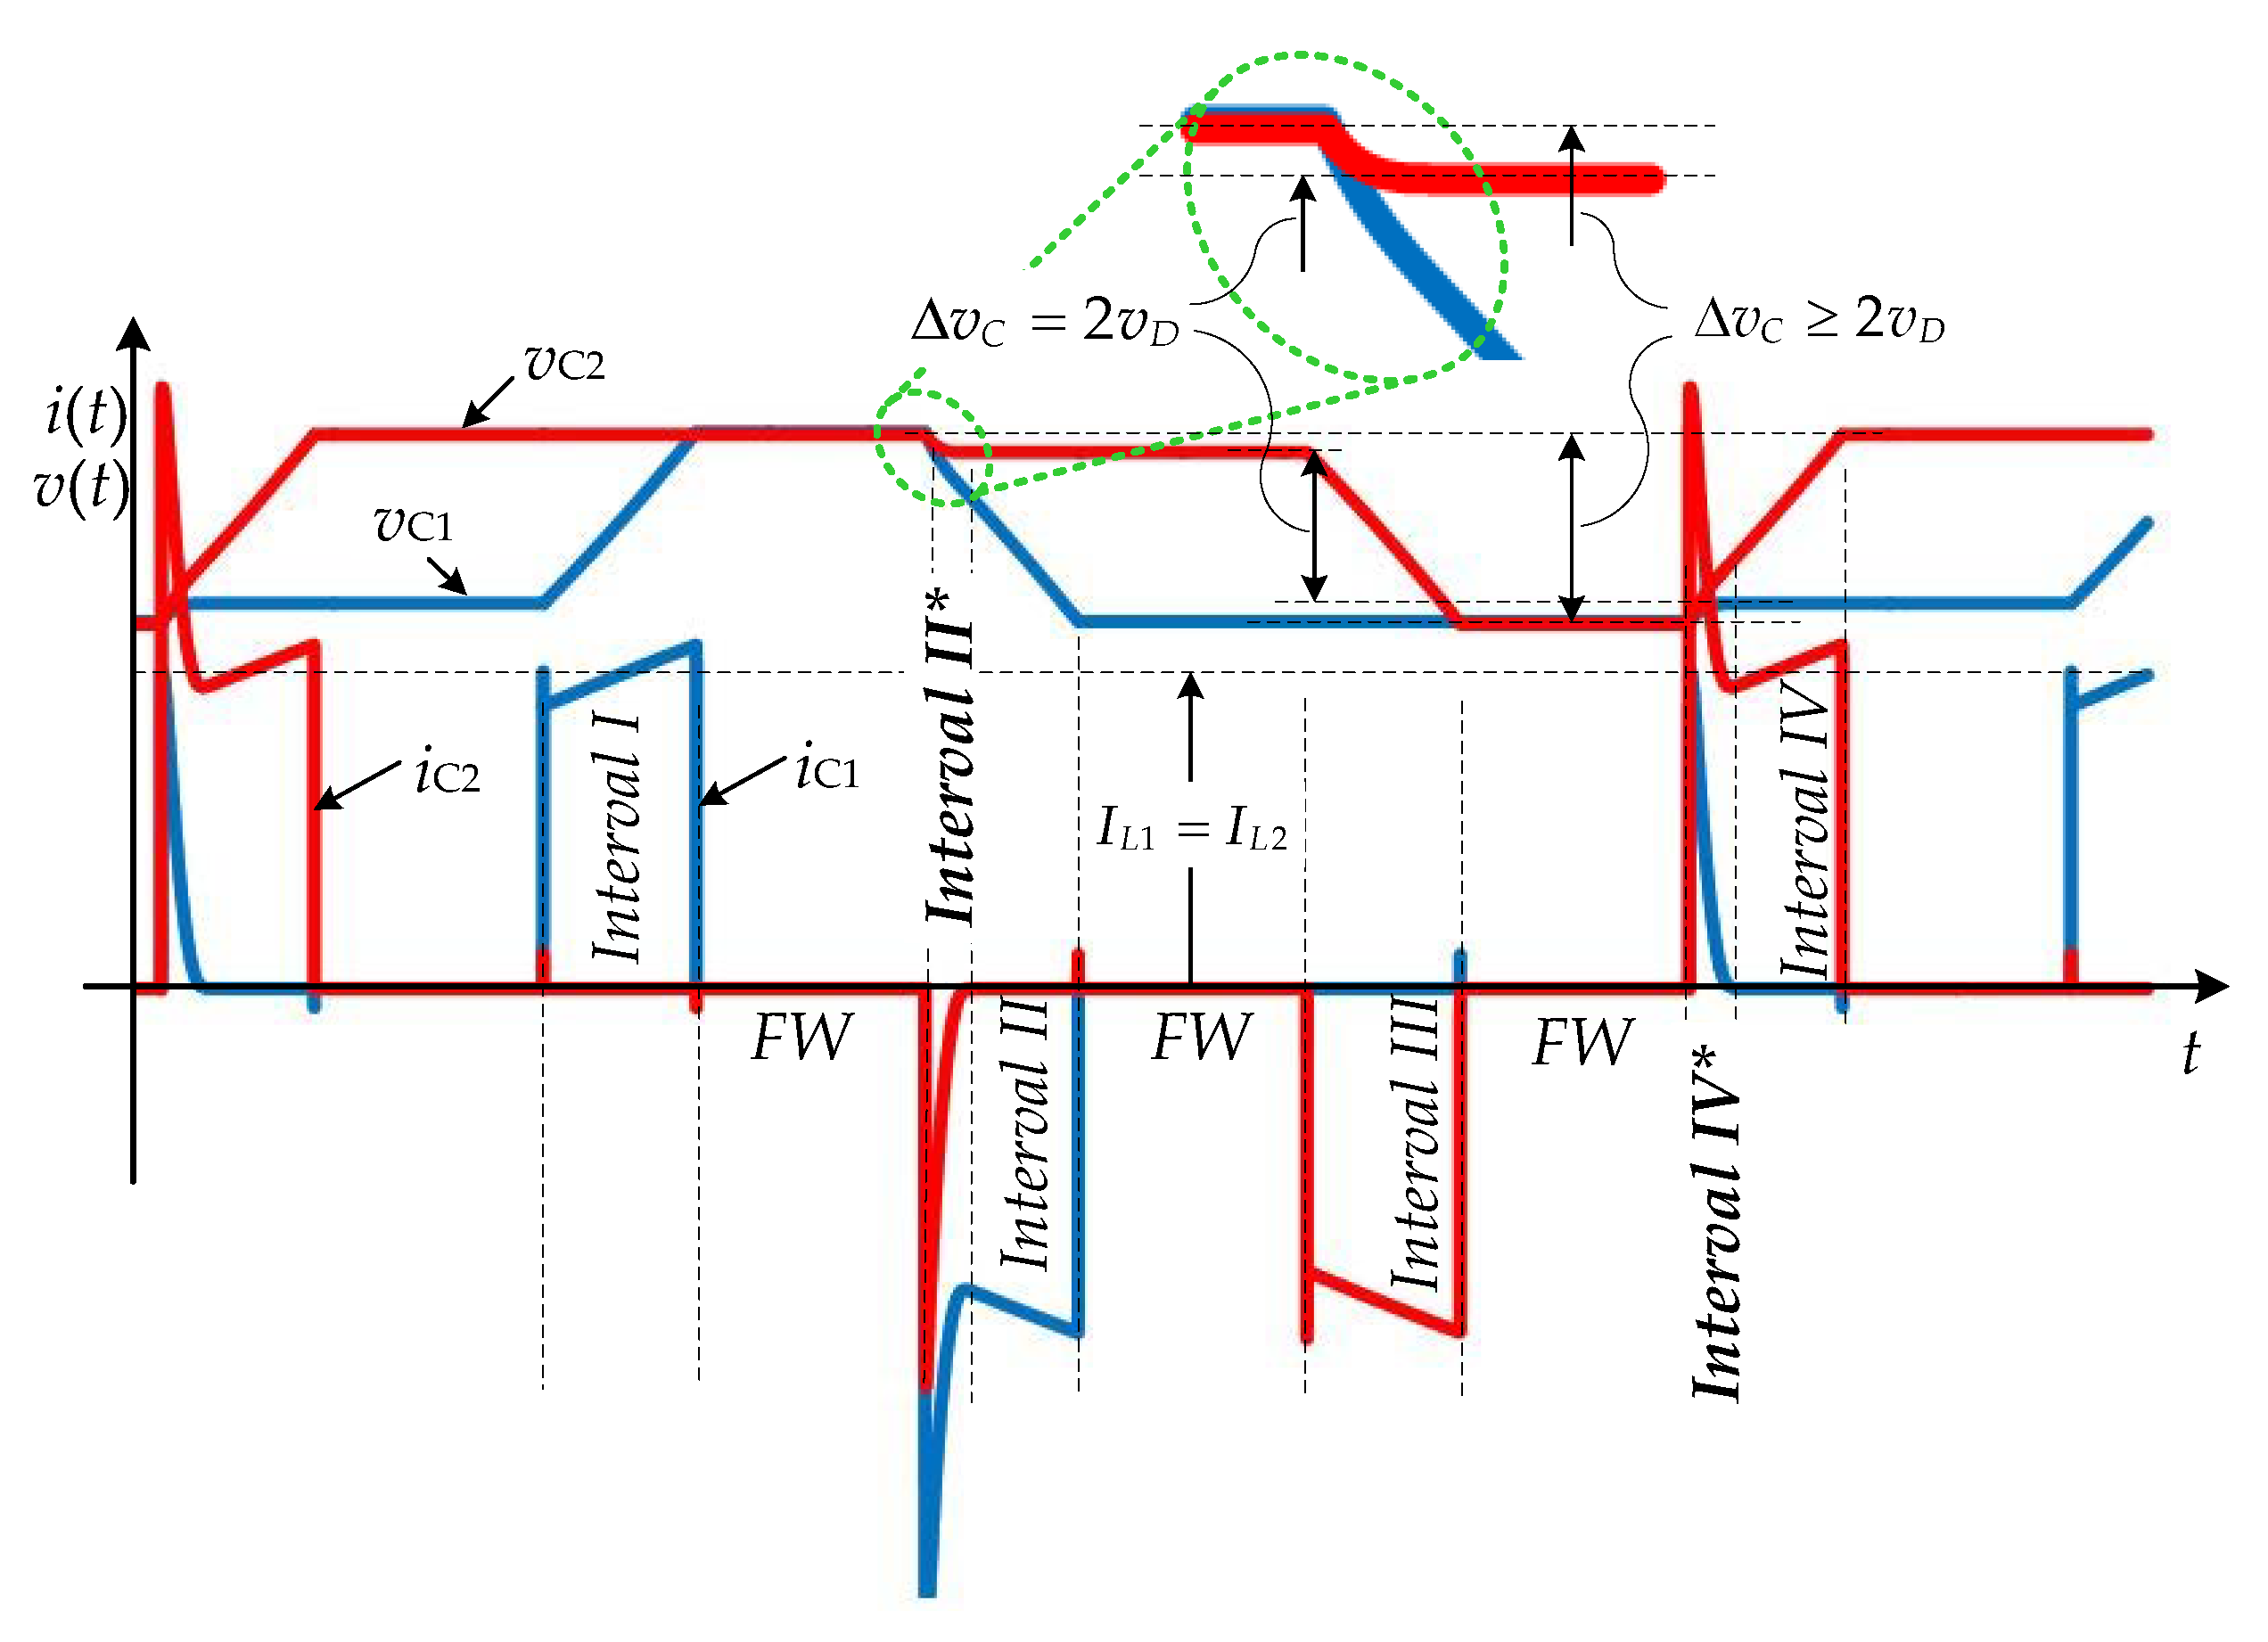 Energies Free Full Text Theoretical And Experimental Boost Converter Current Path With Mosfet On 11 01017 G005